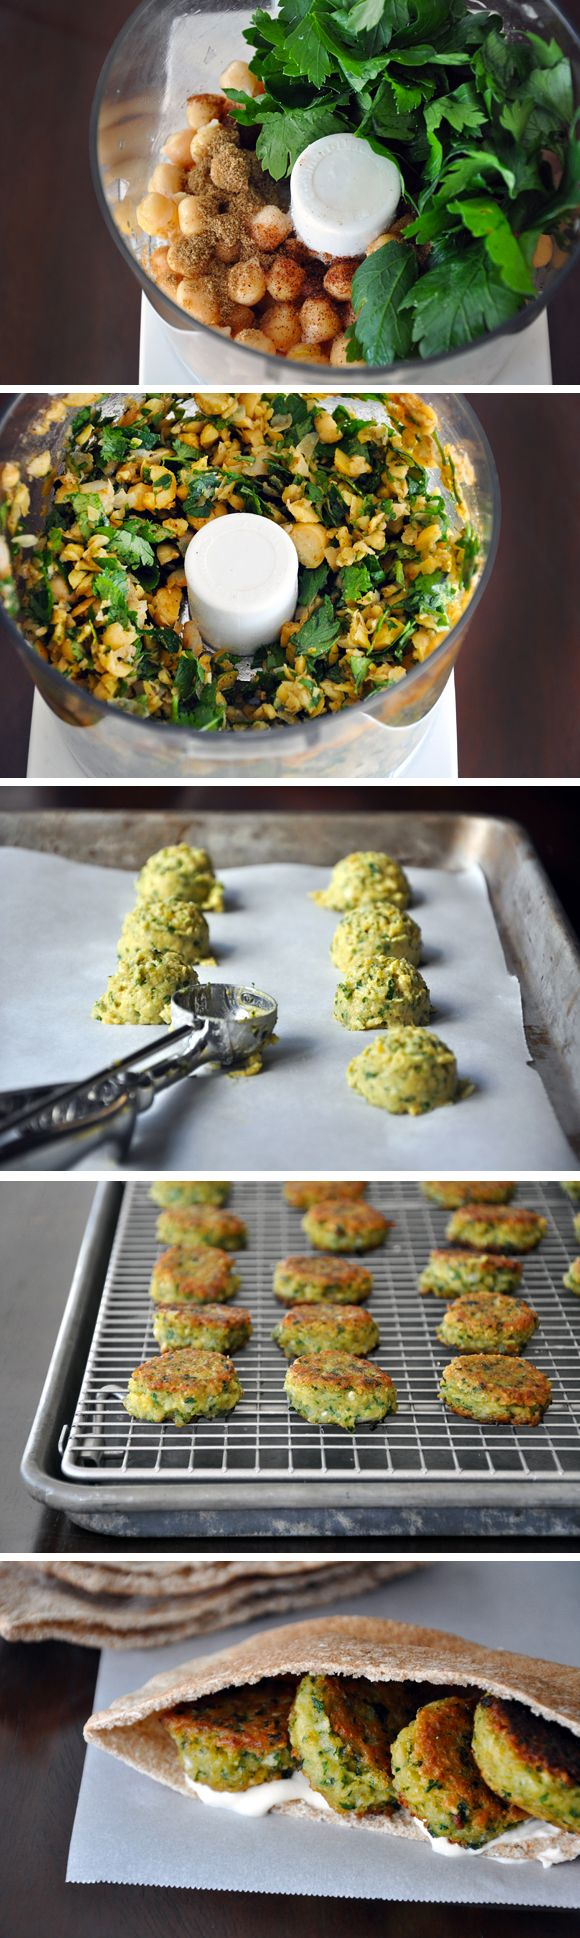 Homemade Falafel #vegan #recipe